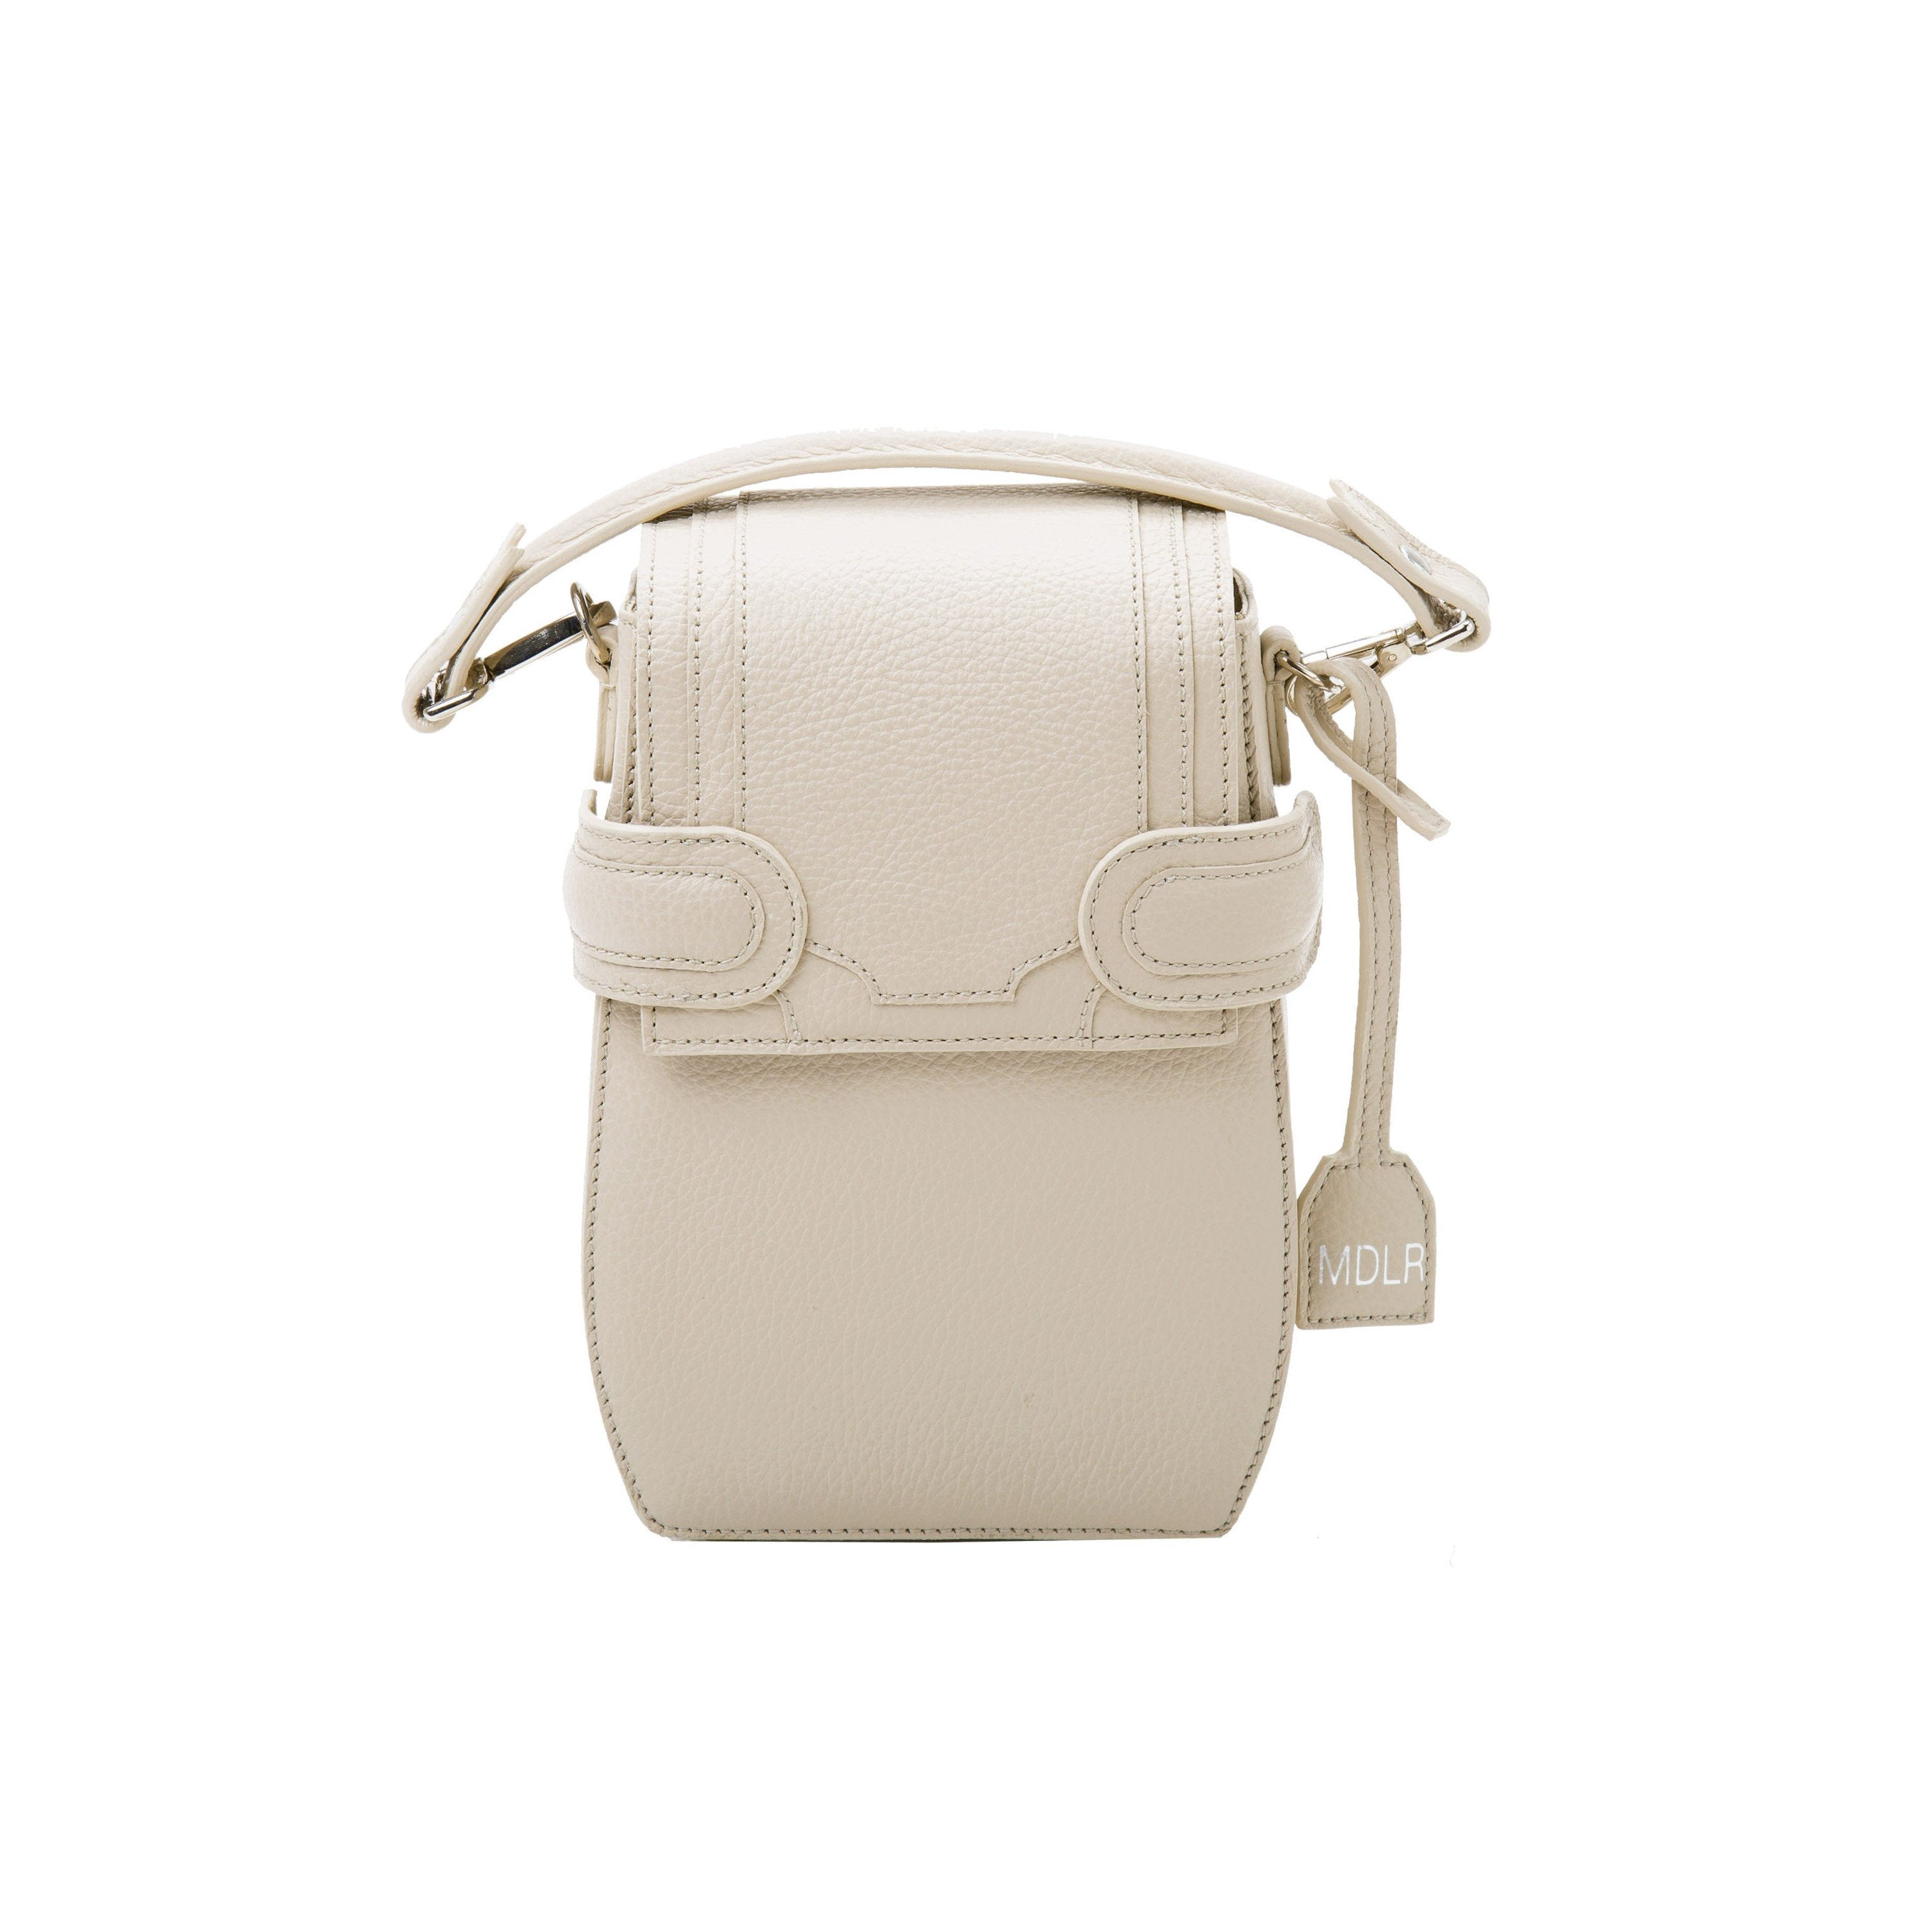 Italian materials and handcrafted in Portugal, OCTAVIO RIS 4 WAY BACKPACK is a cute cream backpack with fashionable look and feel by MDLR